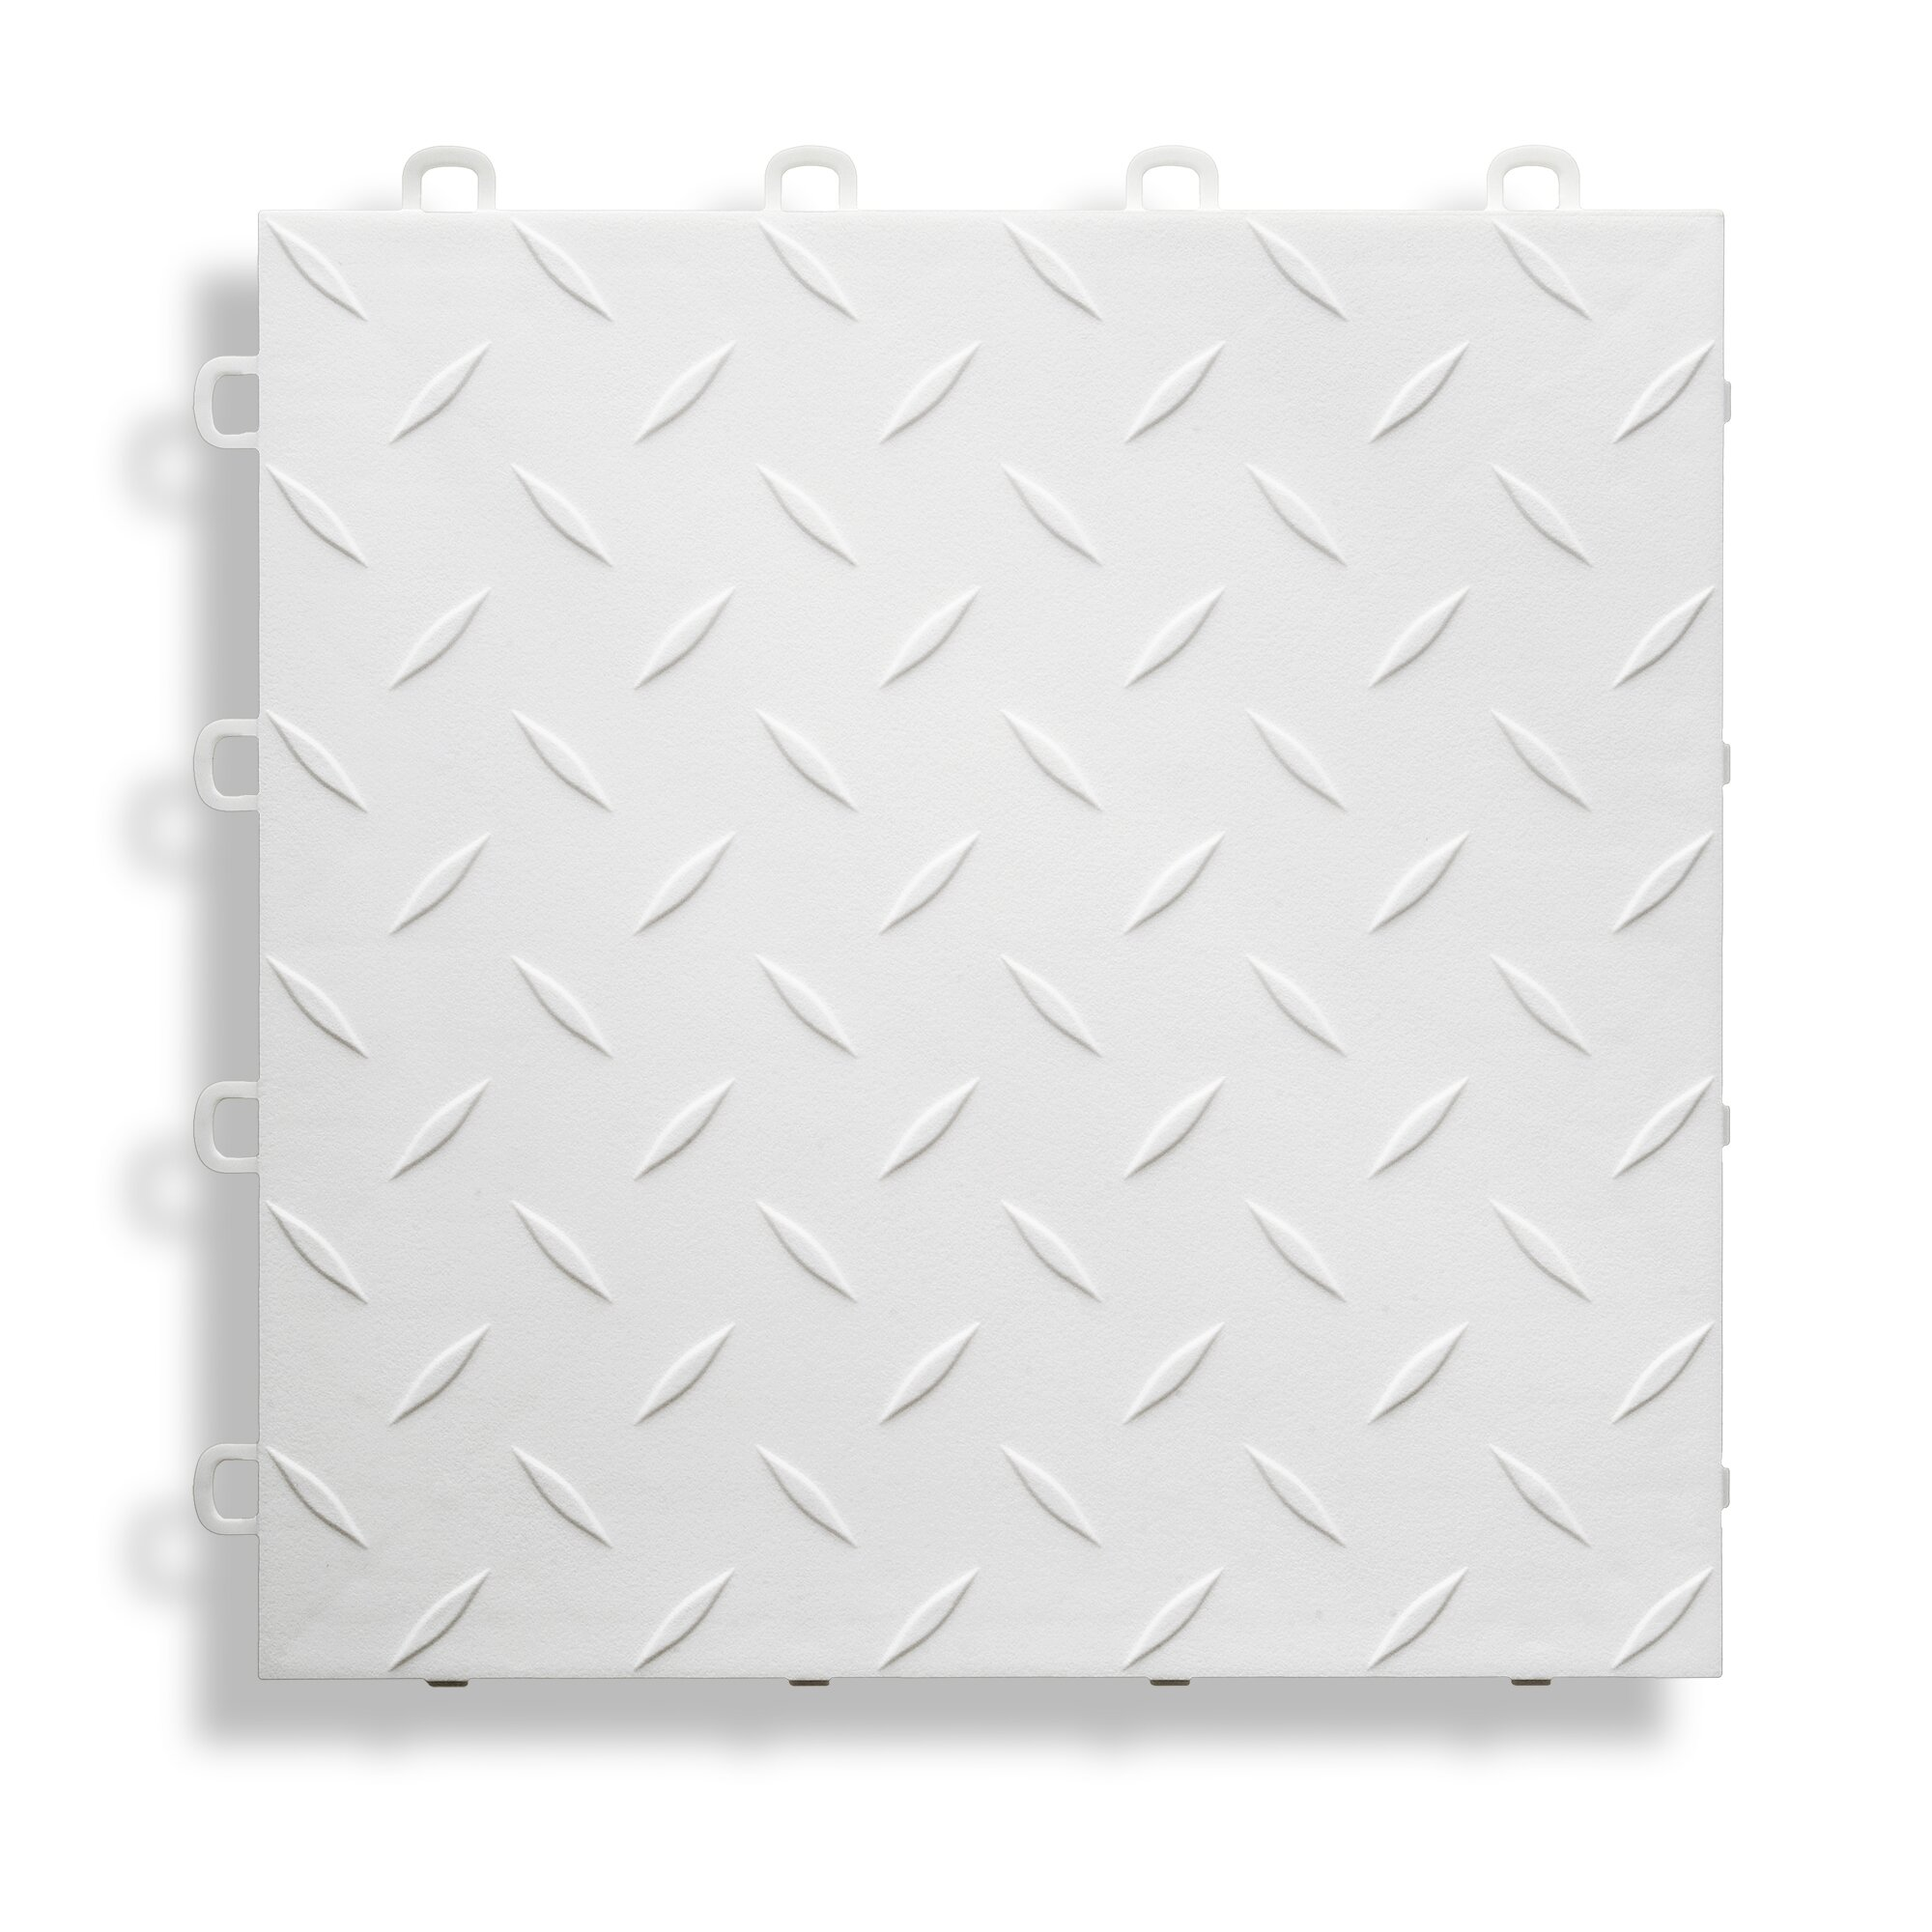 BlockTile 12 X 12 Garage Flooring Tile In White Reviews W